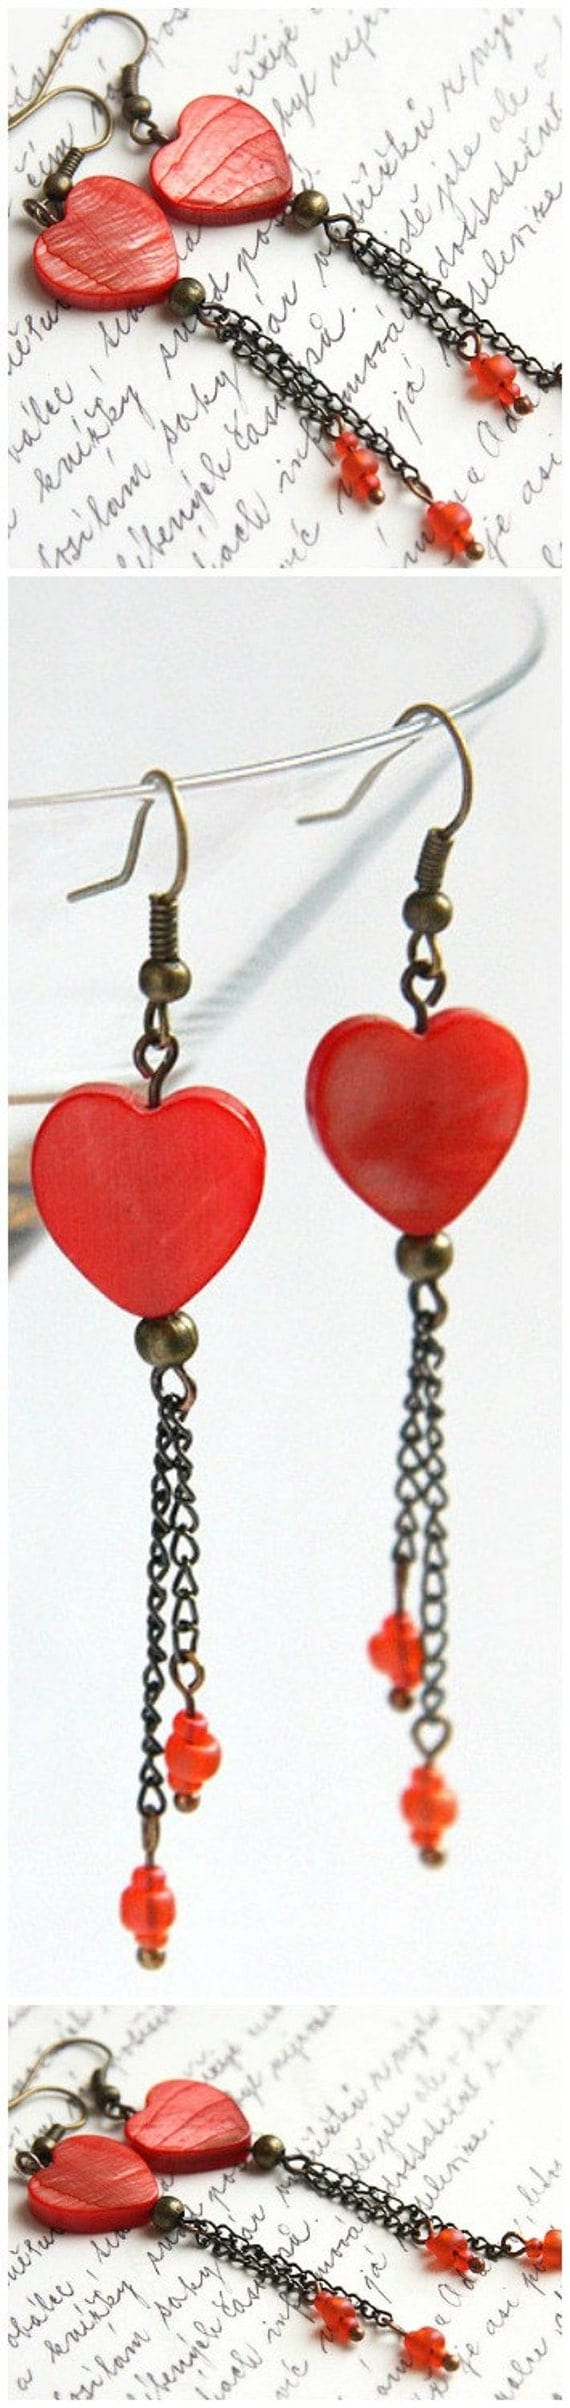 Red Heart Earrings Mother of Pearl Earrings Antique Bronze Chain Dangle Steampunk Vintage Style gift for Woman Mom Girlfriend jewelry trend